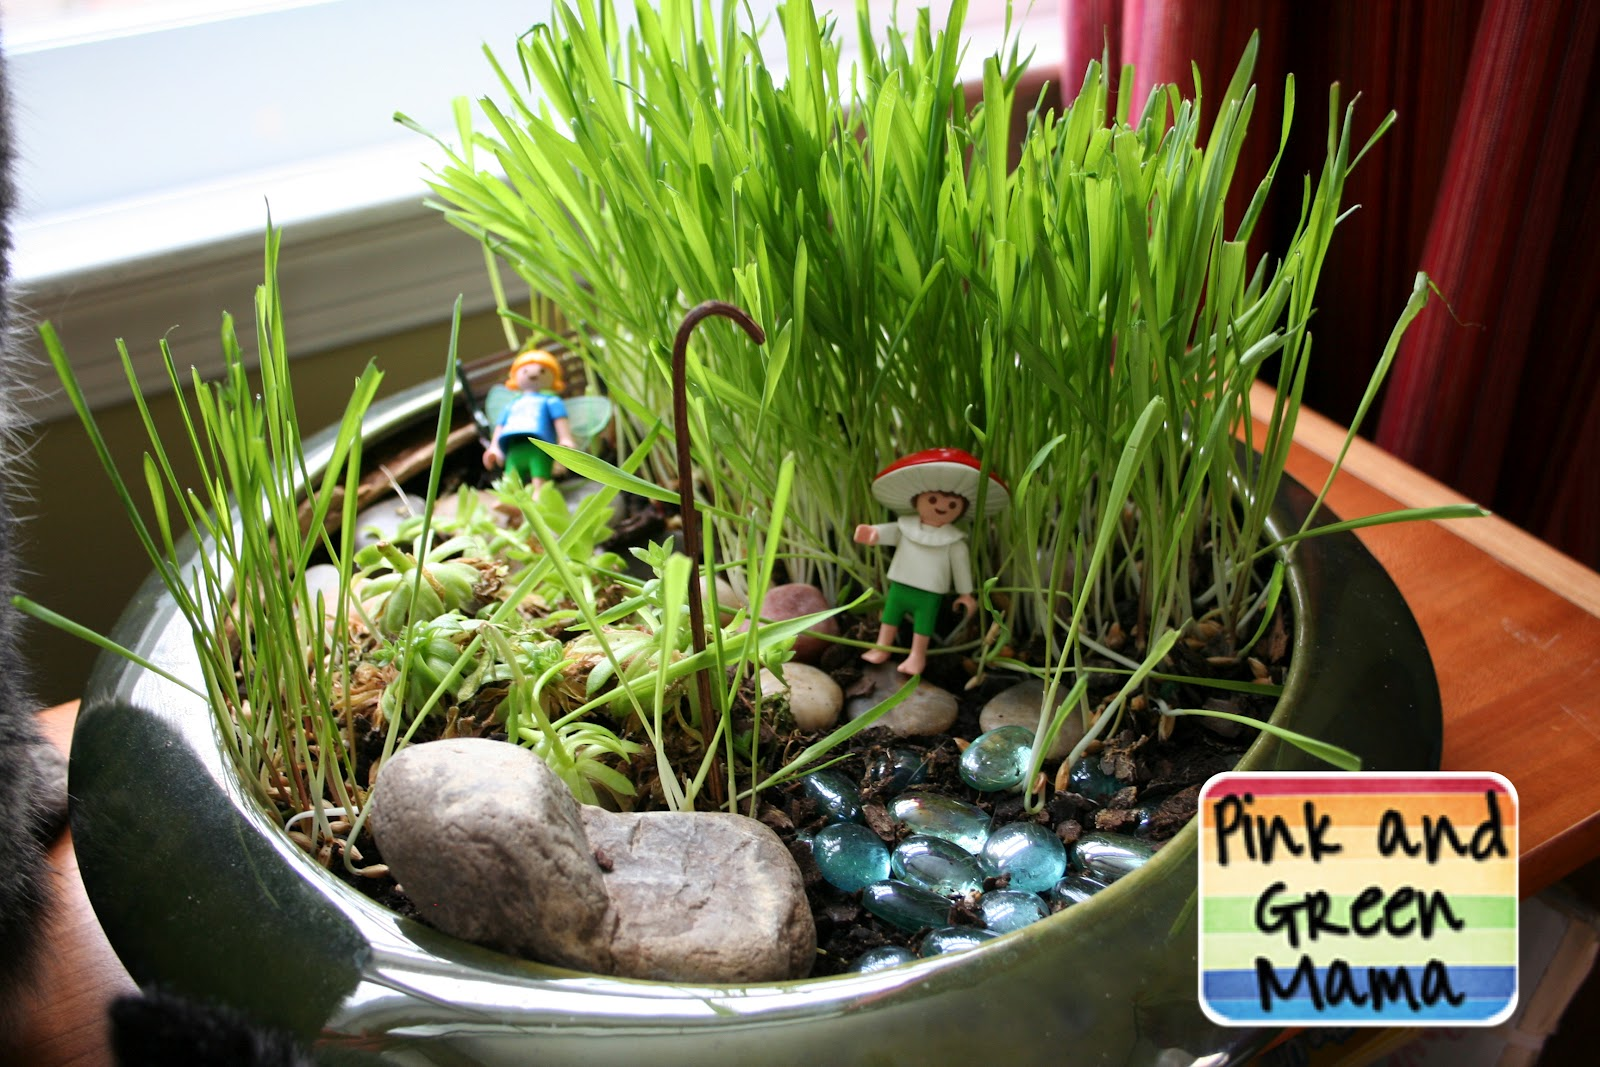 perfect pink and green mama   indoor cat fairy garden